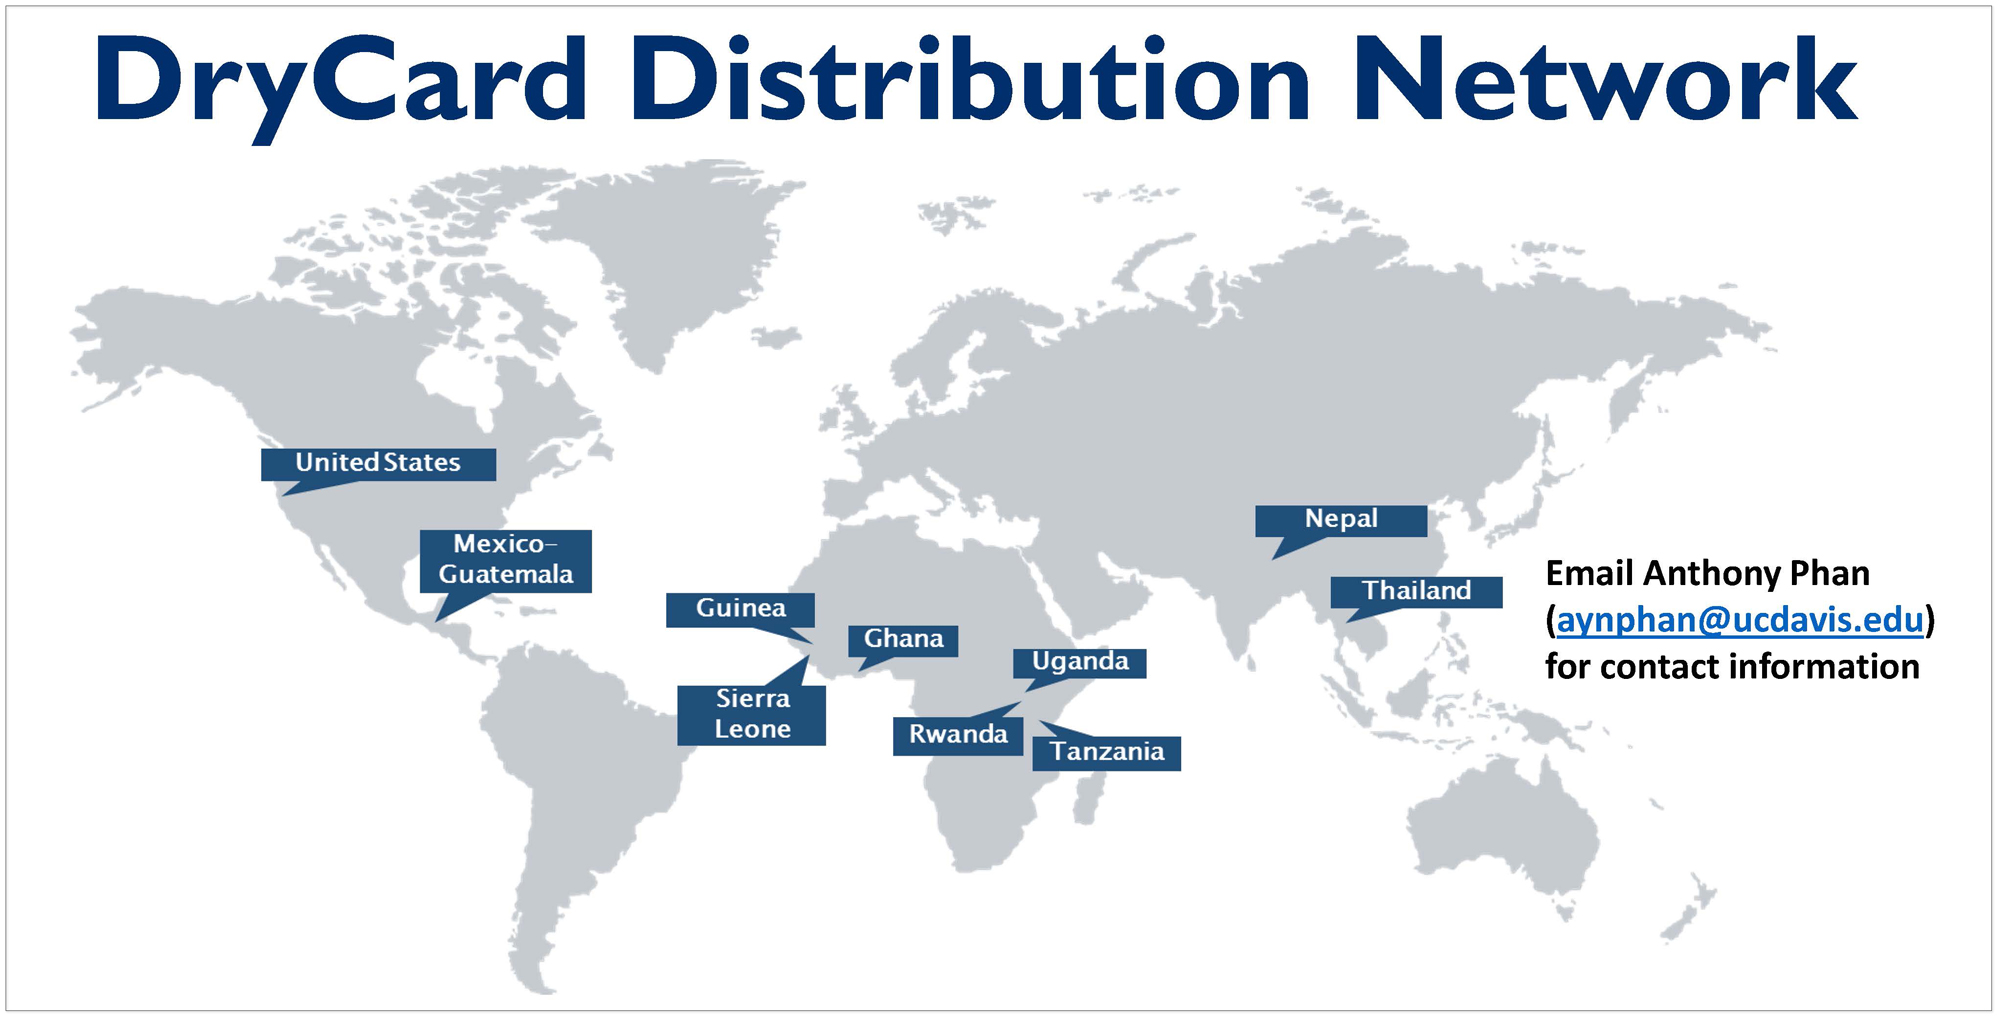 Slide shows DryCard Distribution Network map with countries labeled and 22,000+ DryCards sold